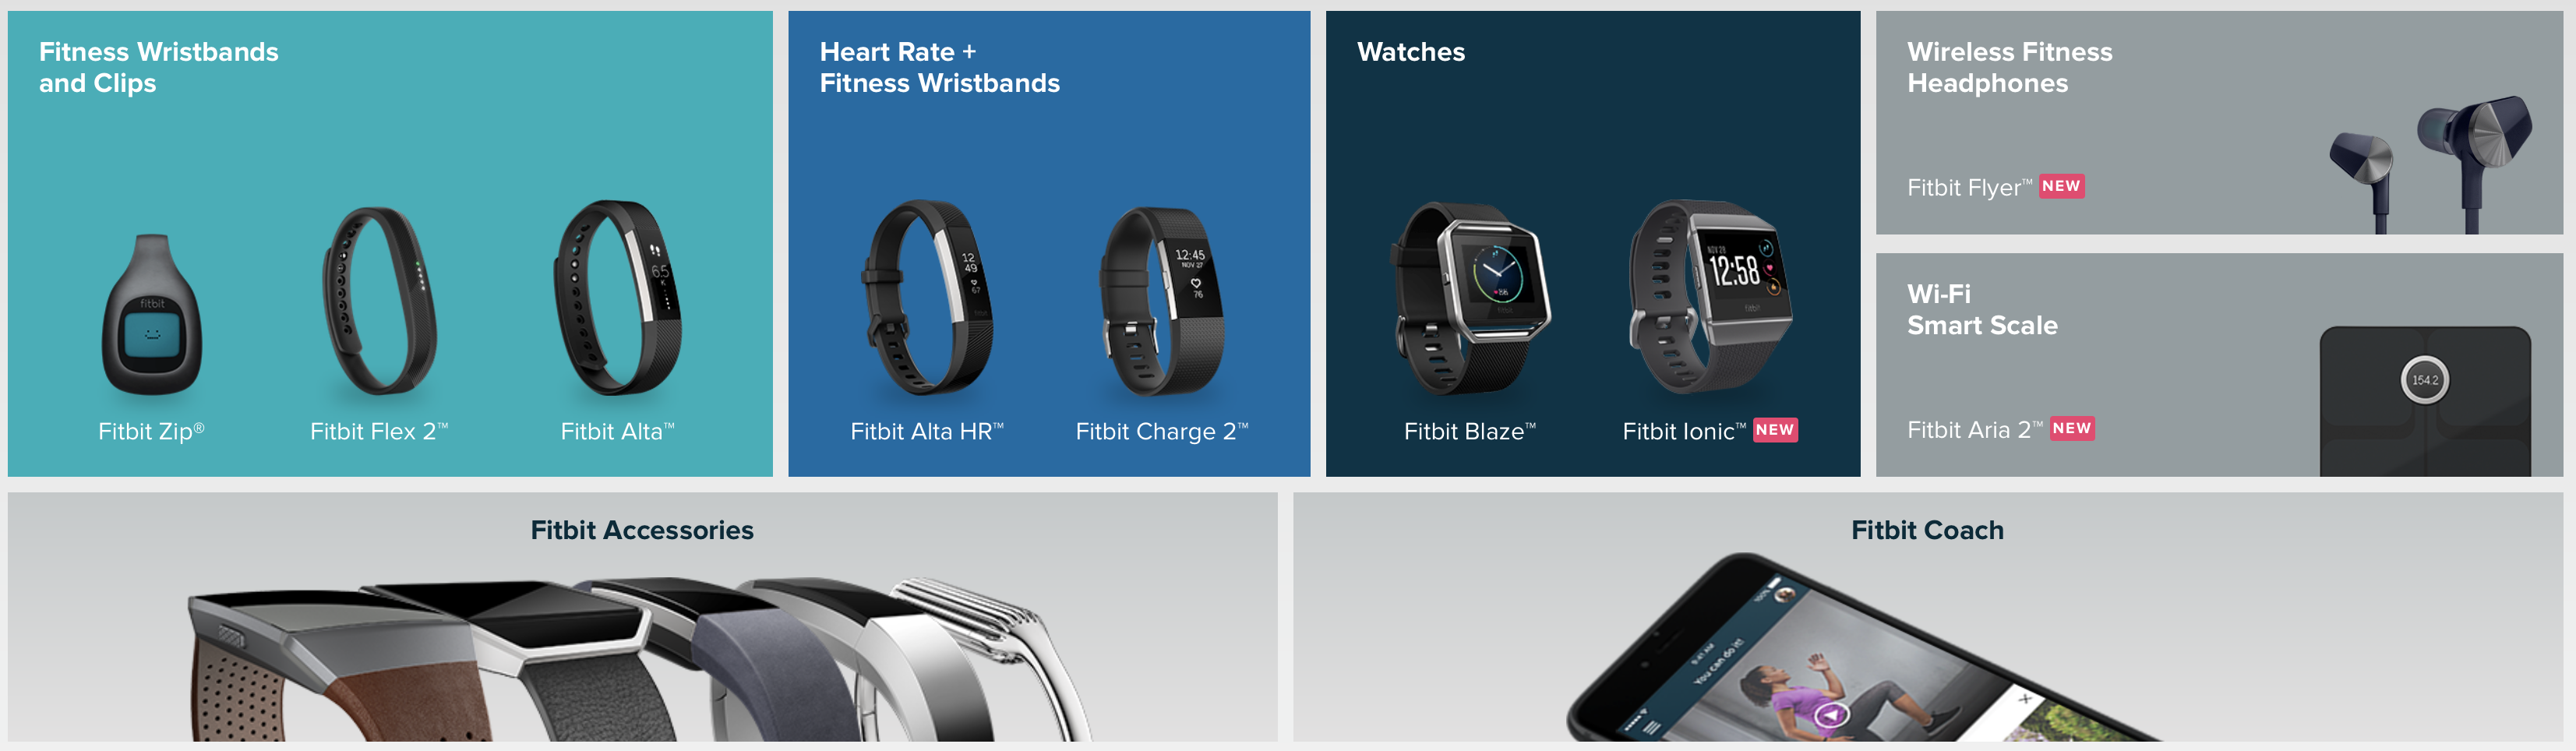 Fitbit: Beyond Saving - Fitbit, Inc  (NYSE:FIT) | Seeking Alpha